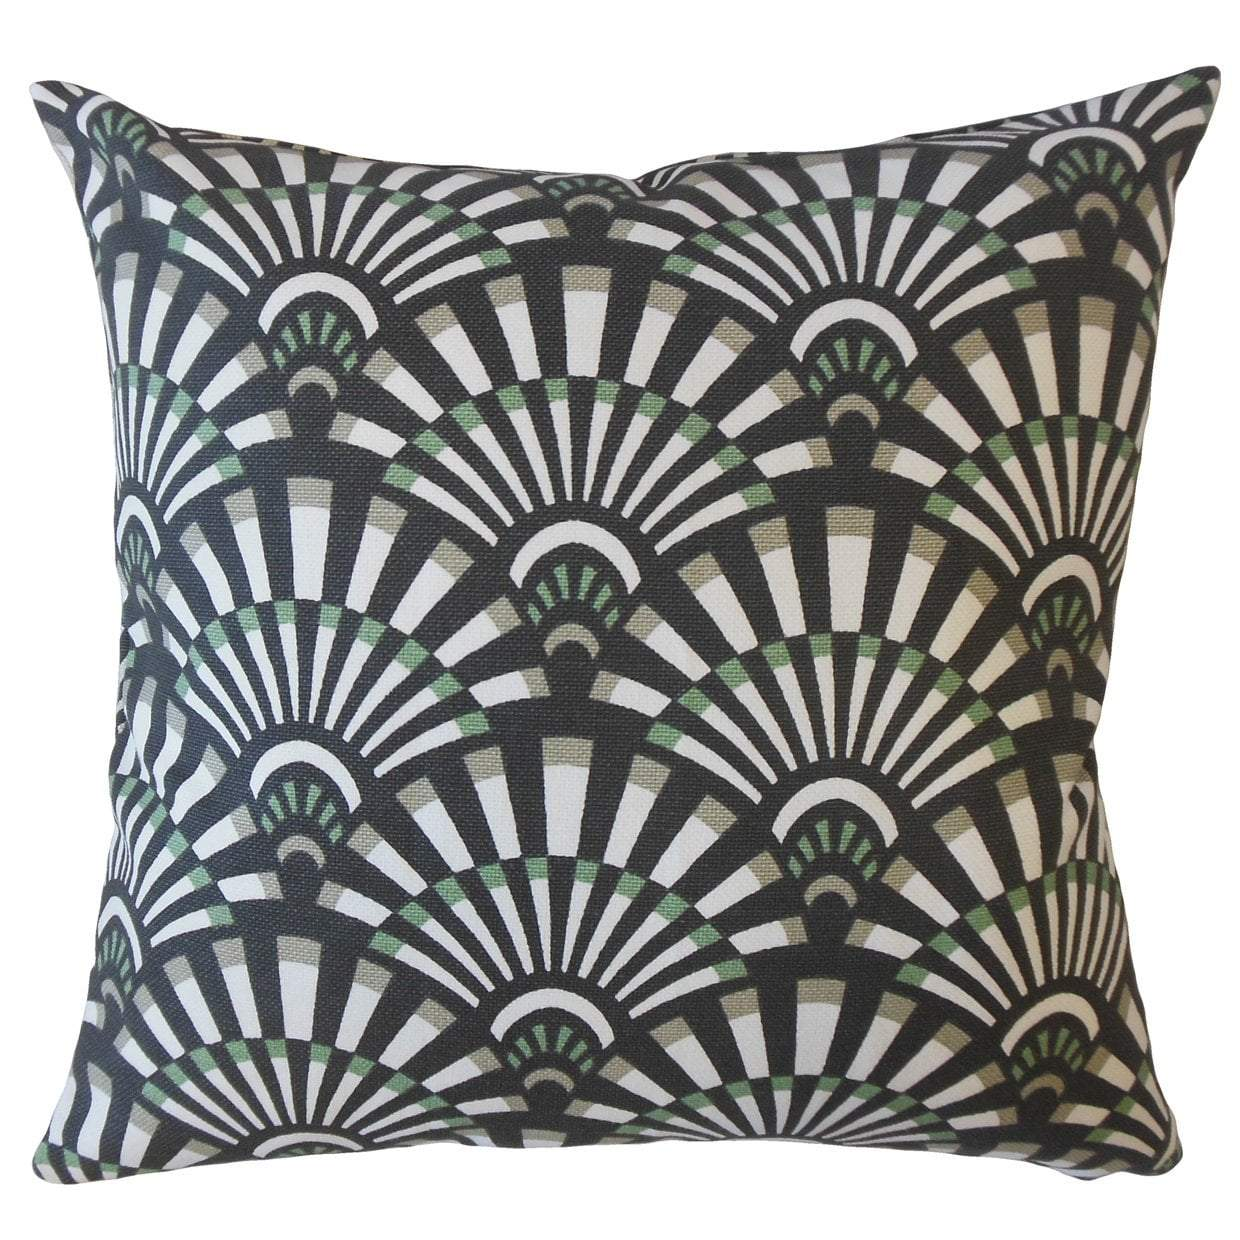 Savoie Throw Pillow Cover